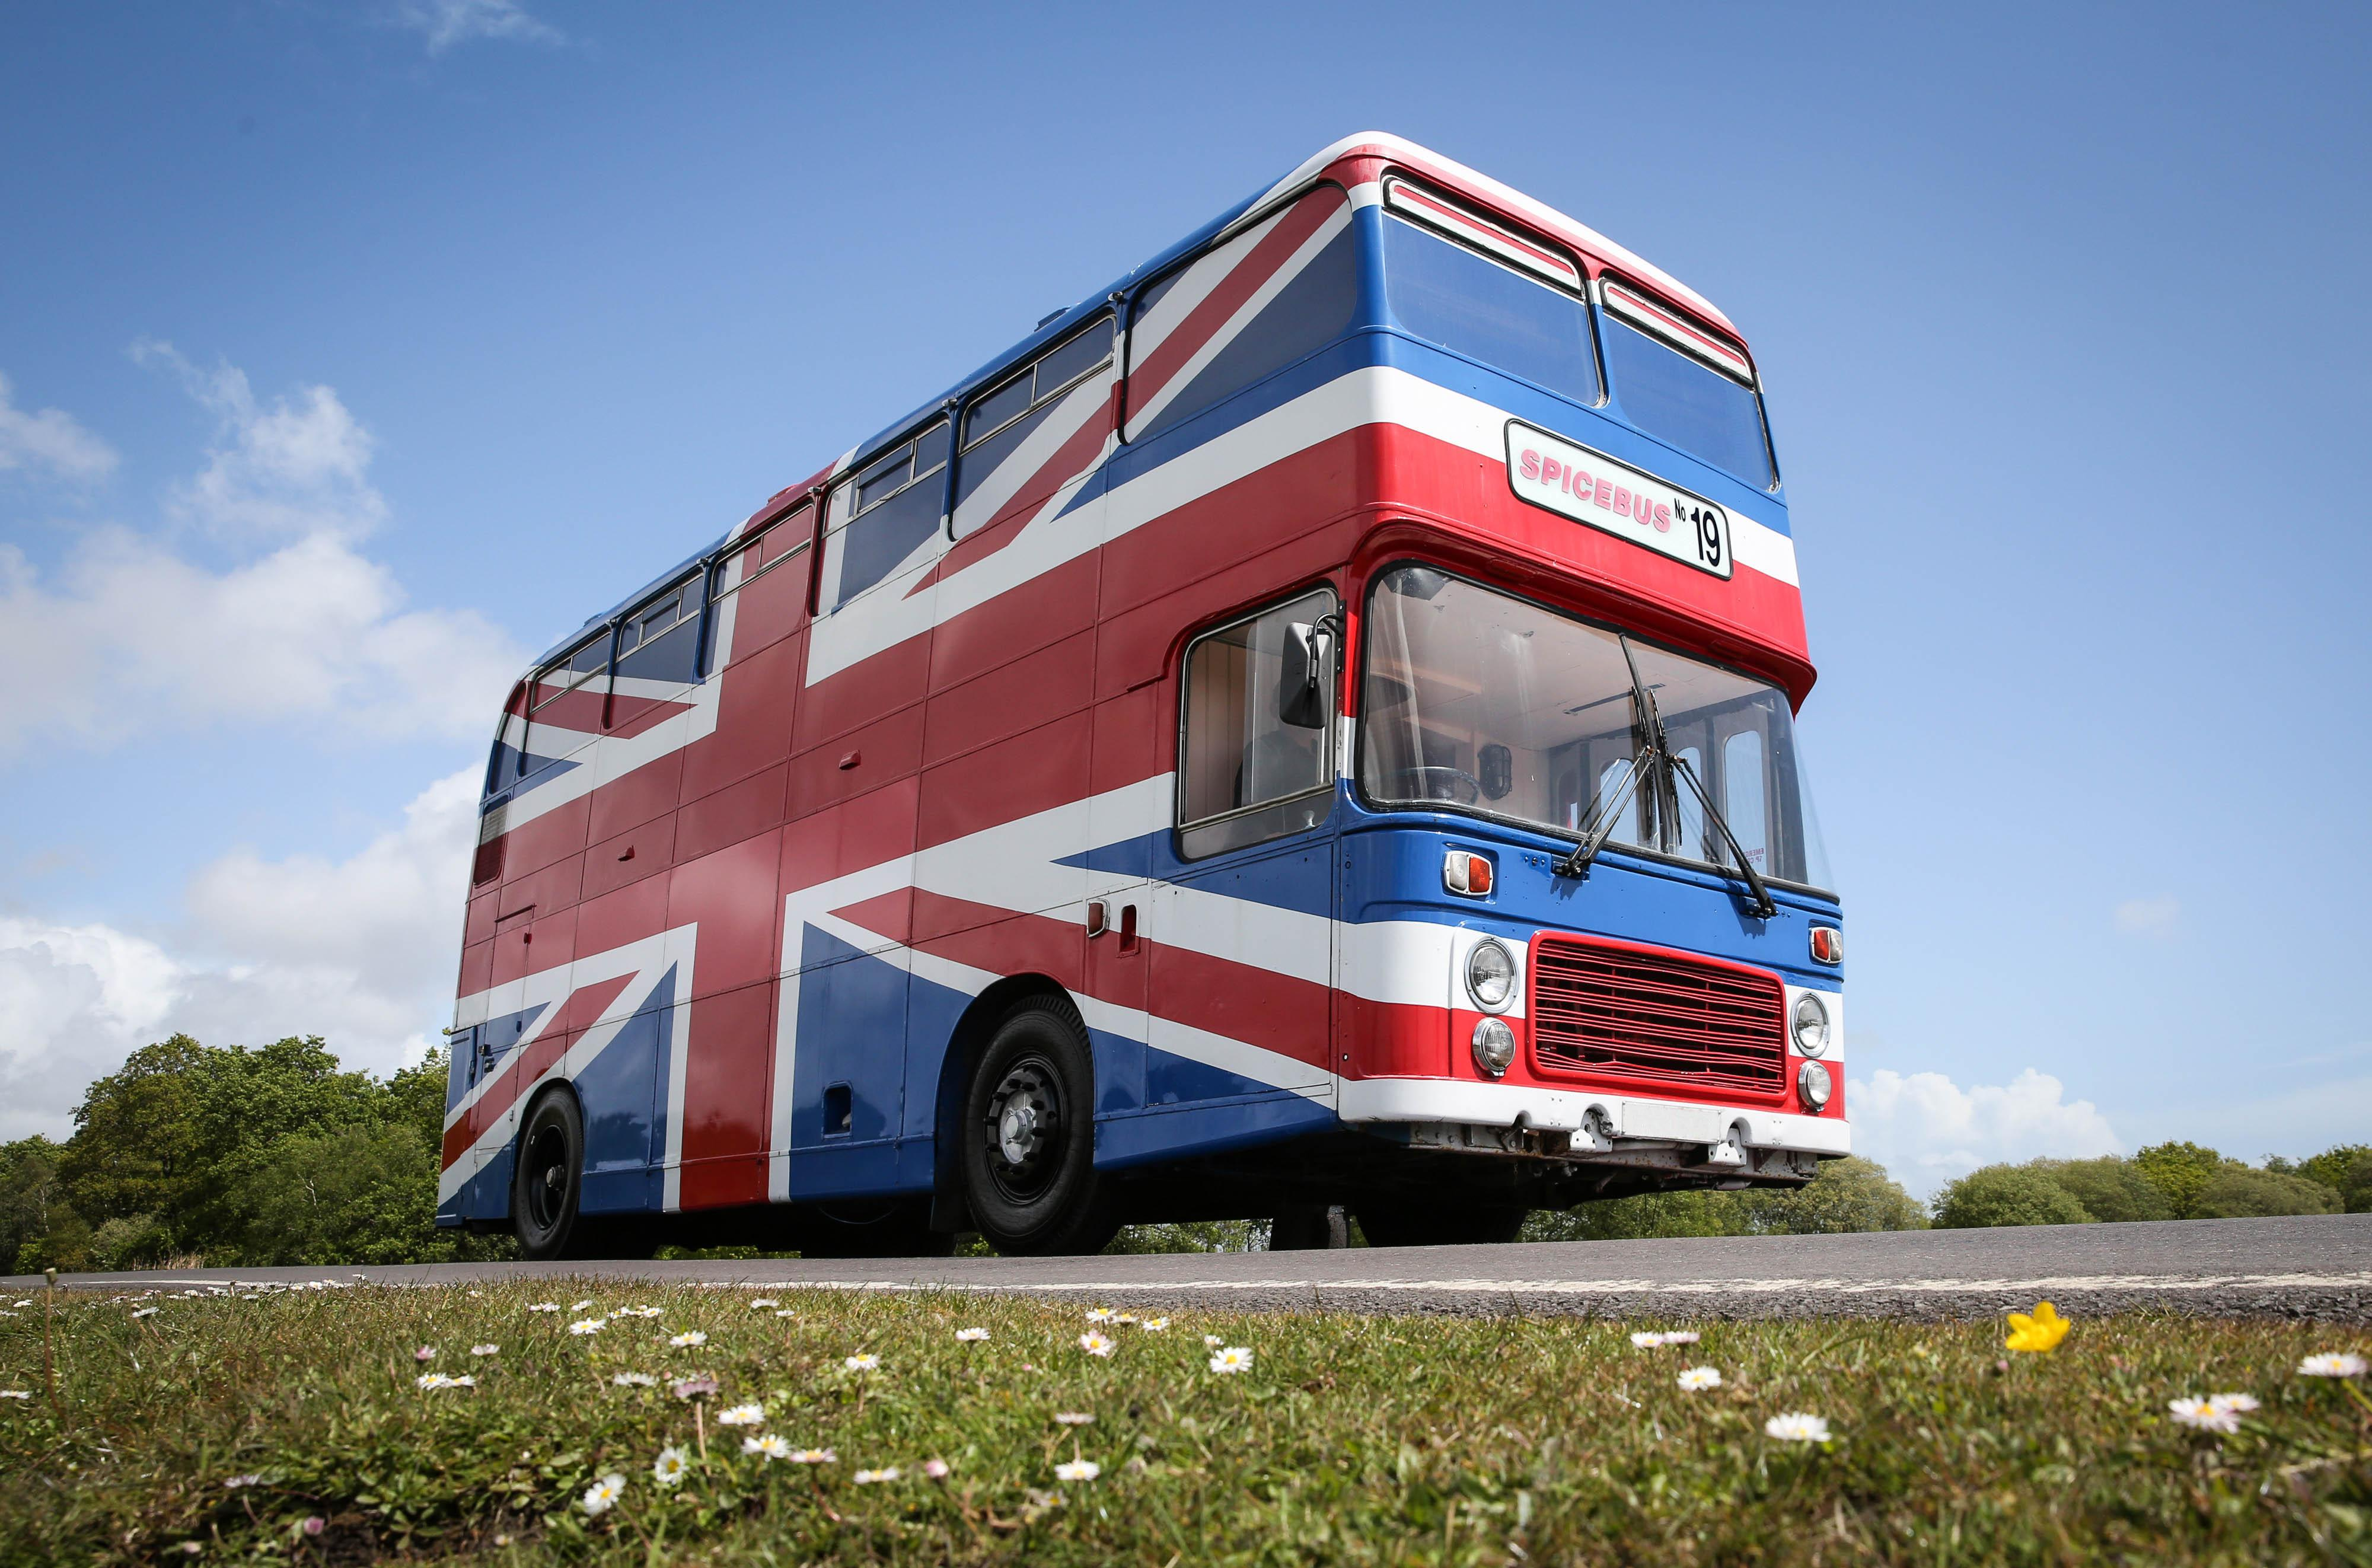 You can now sleep in the Spice Girls Bus